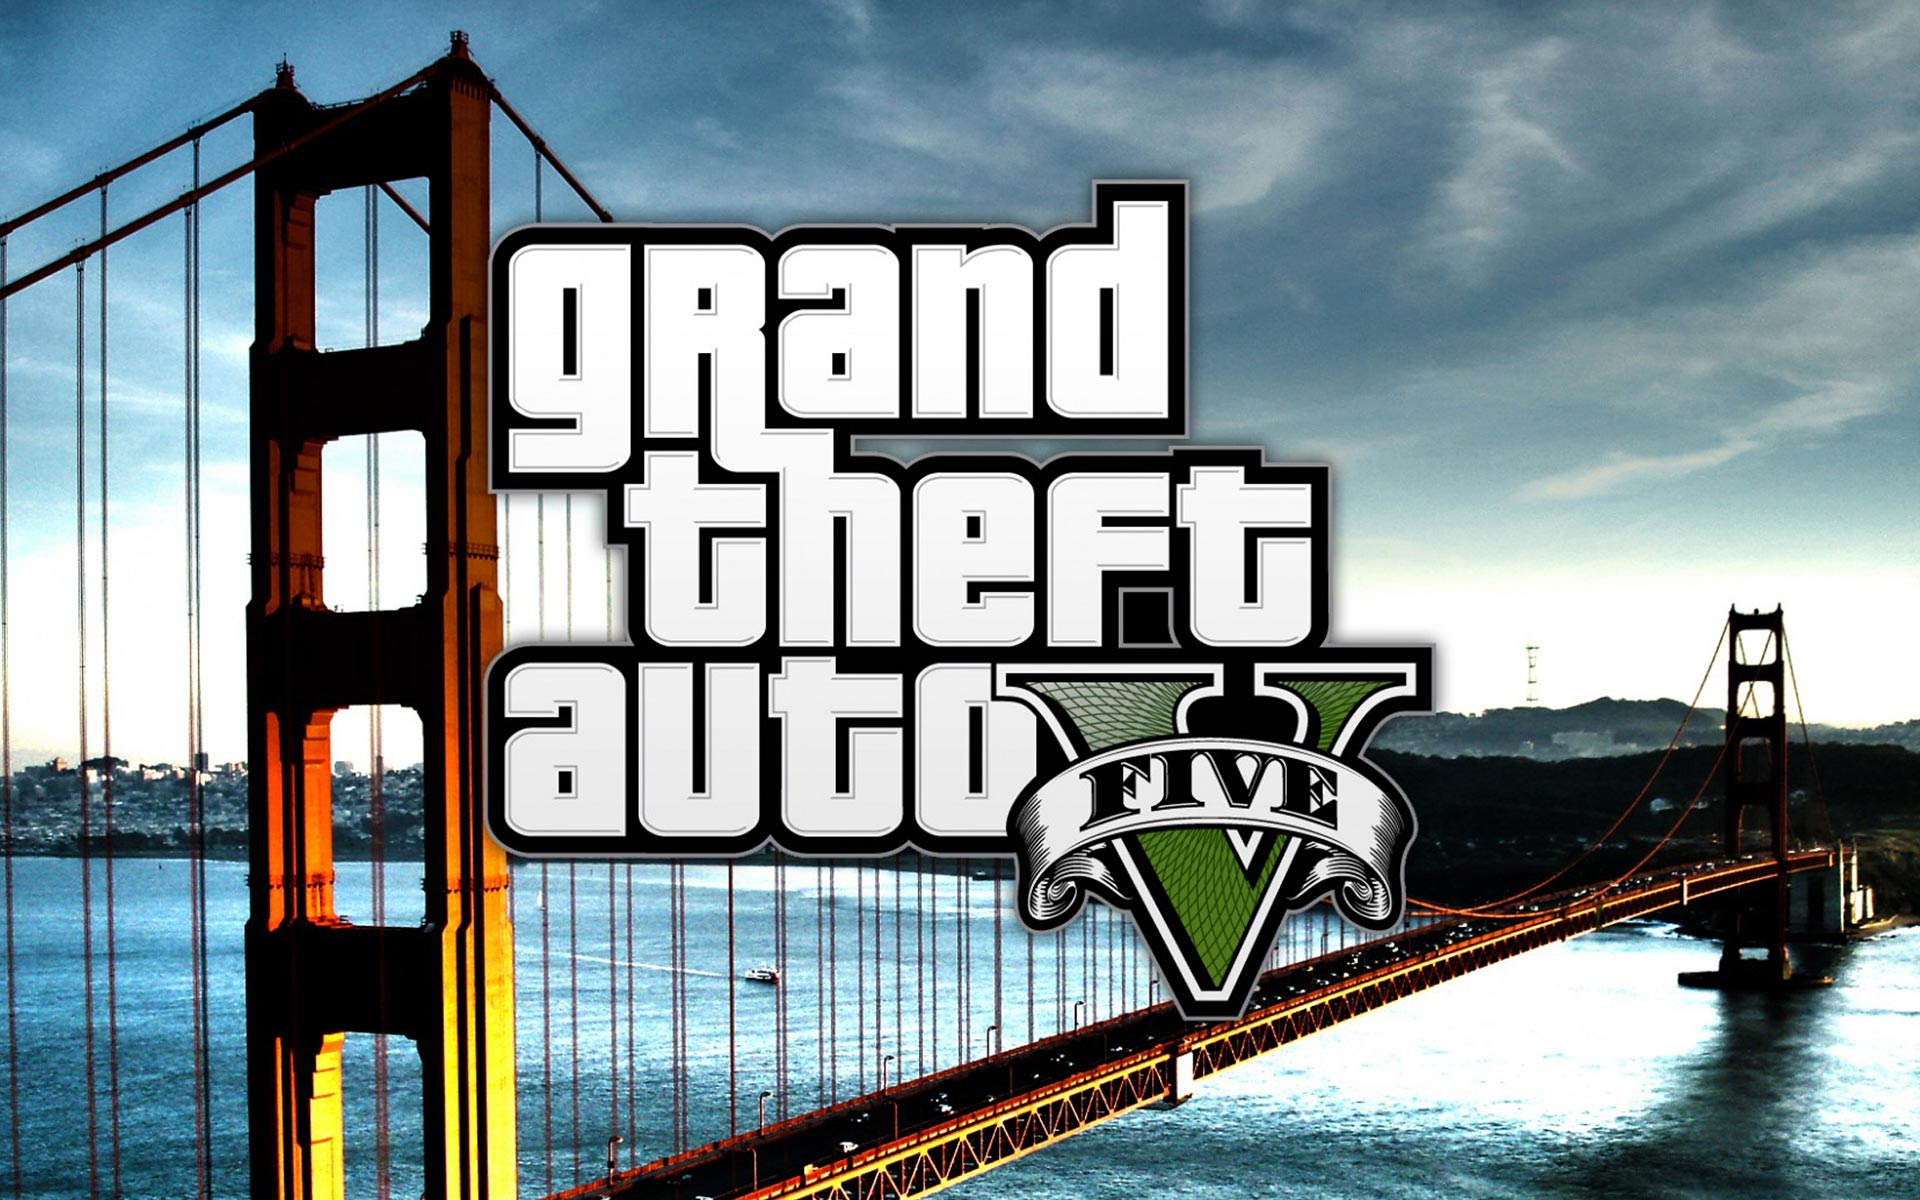 Imagini de Fundal Grand Theft Auto 12